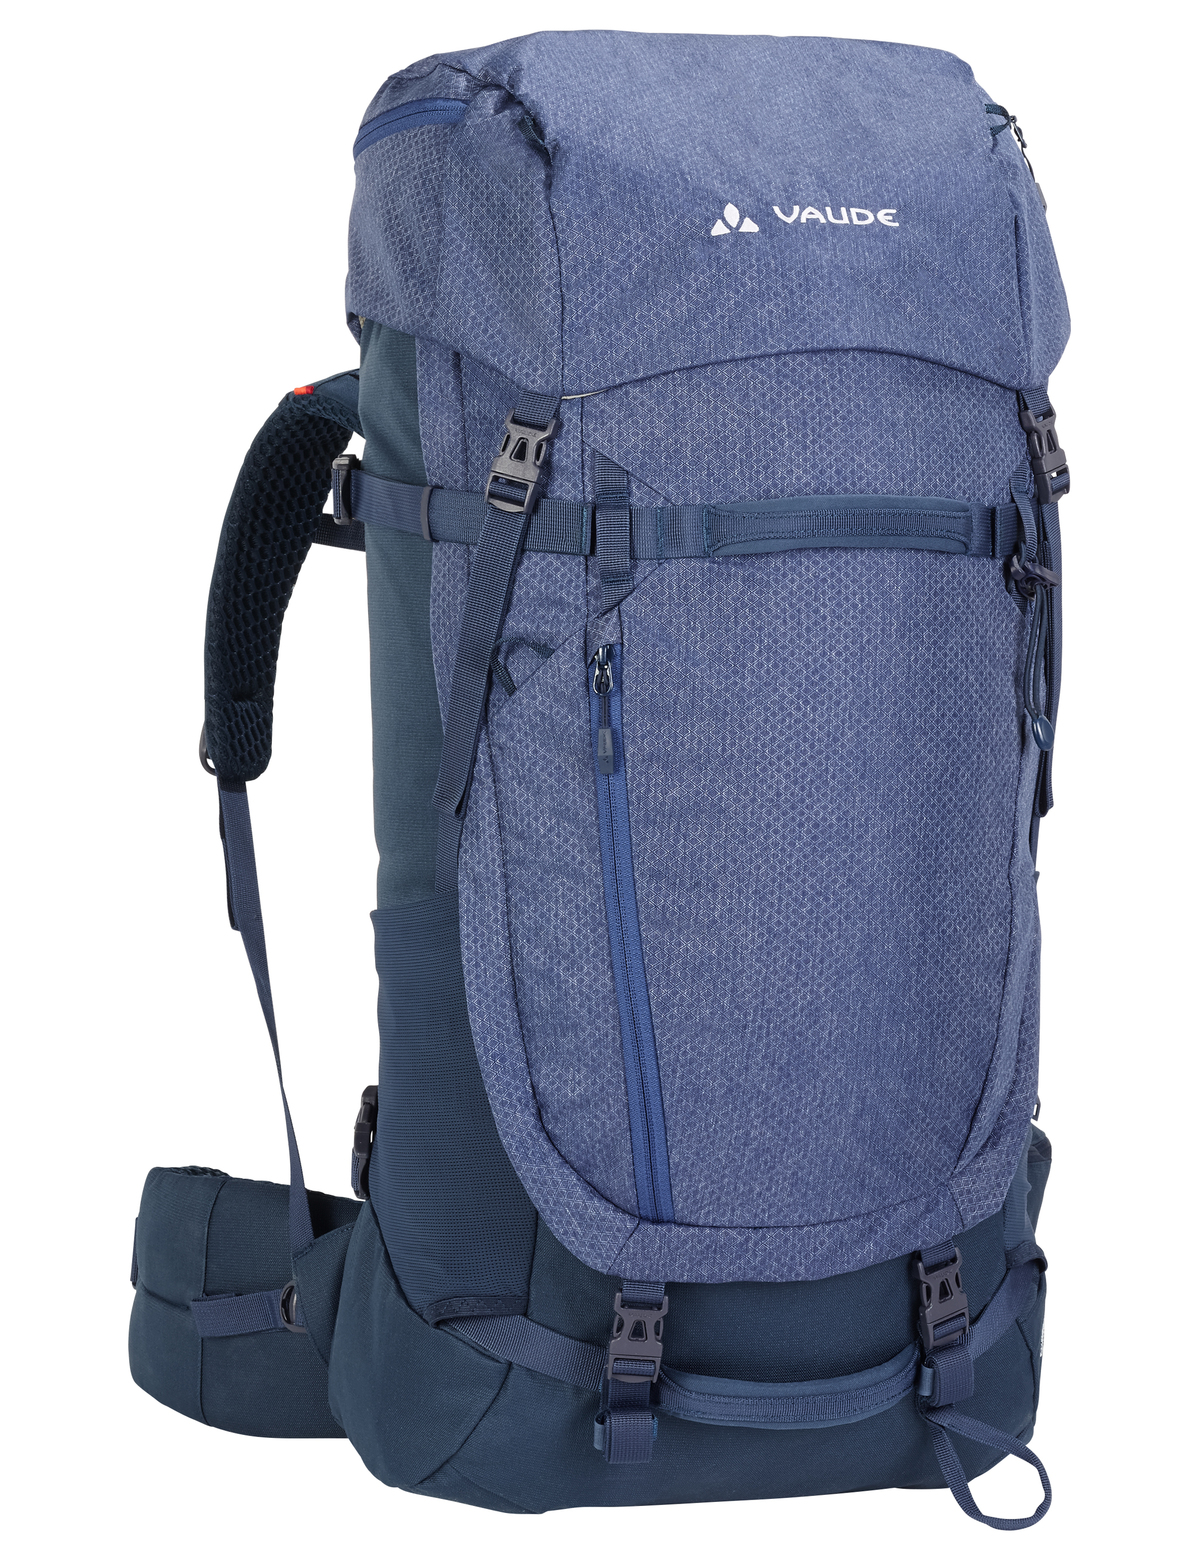 Рюкзак женский Vaude Astrum Evo 55+10 Sailor Blue - Фото 1 большая